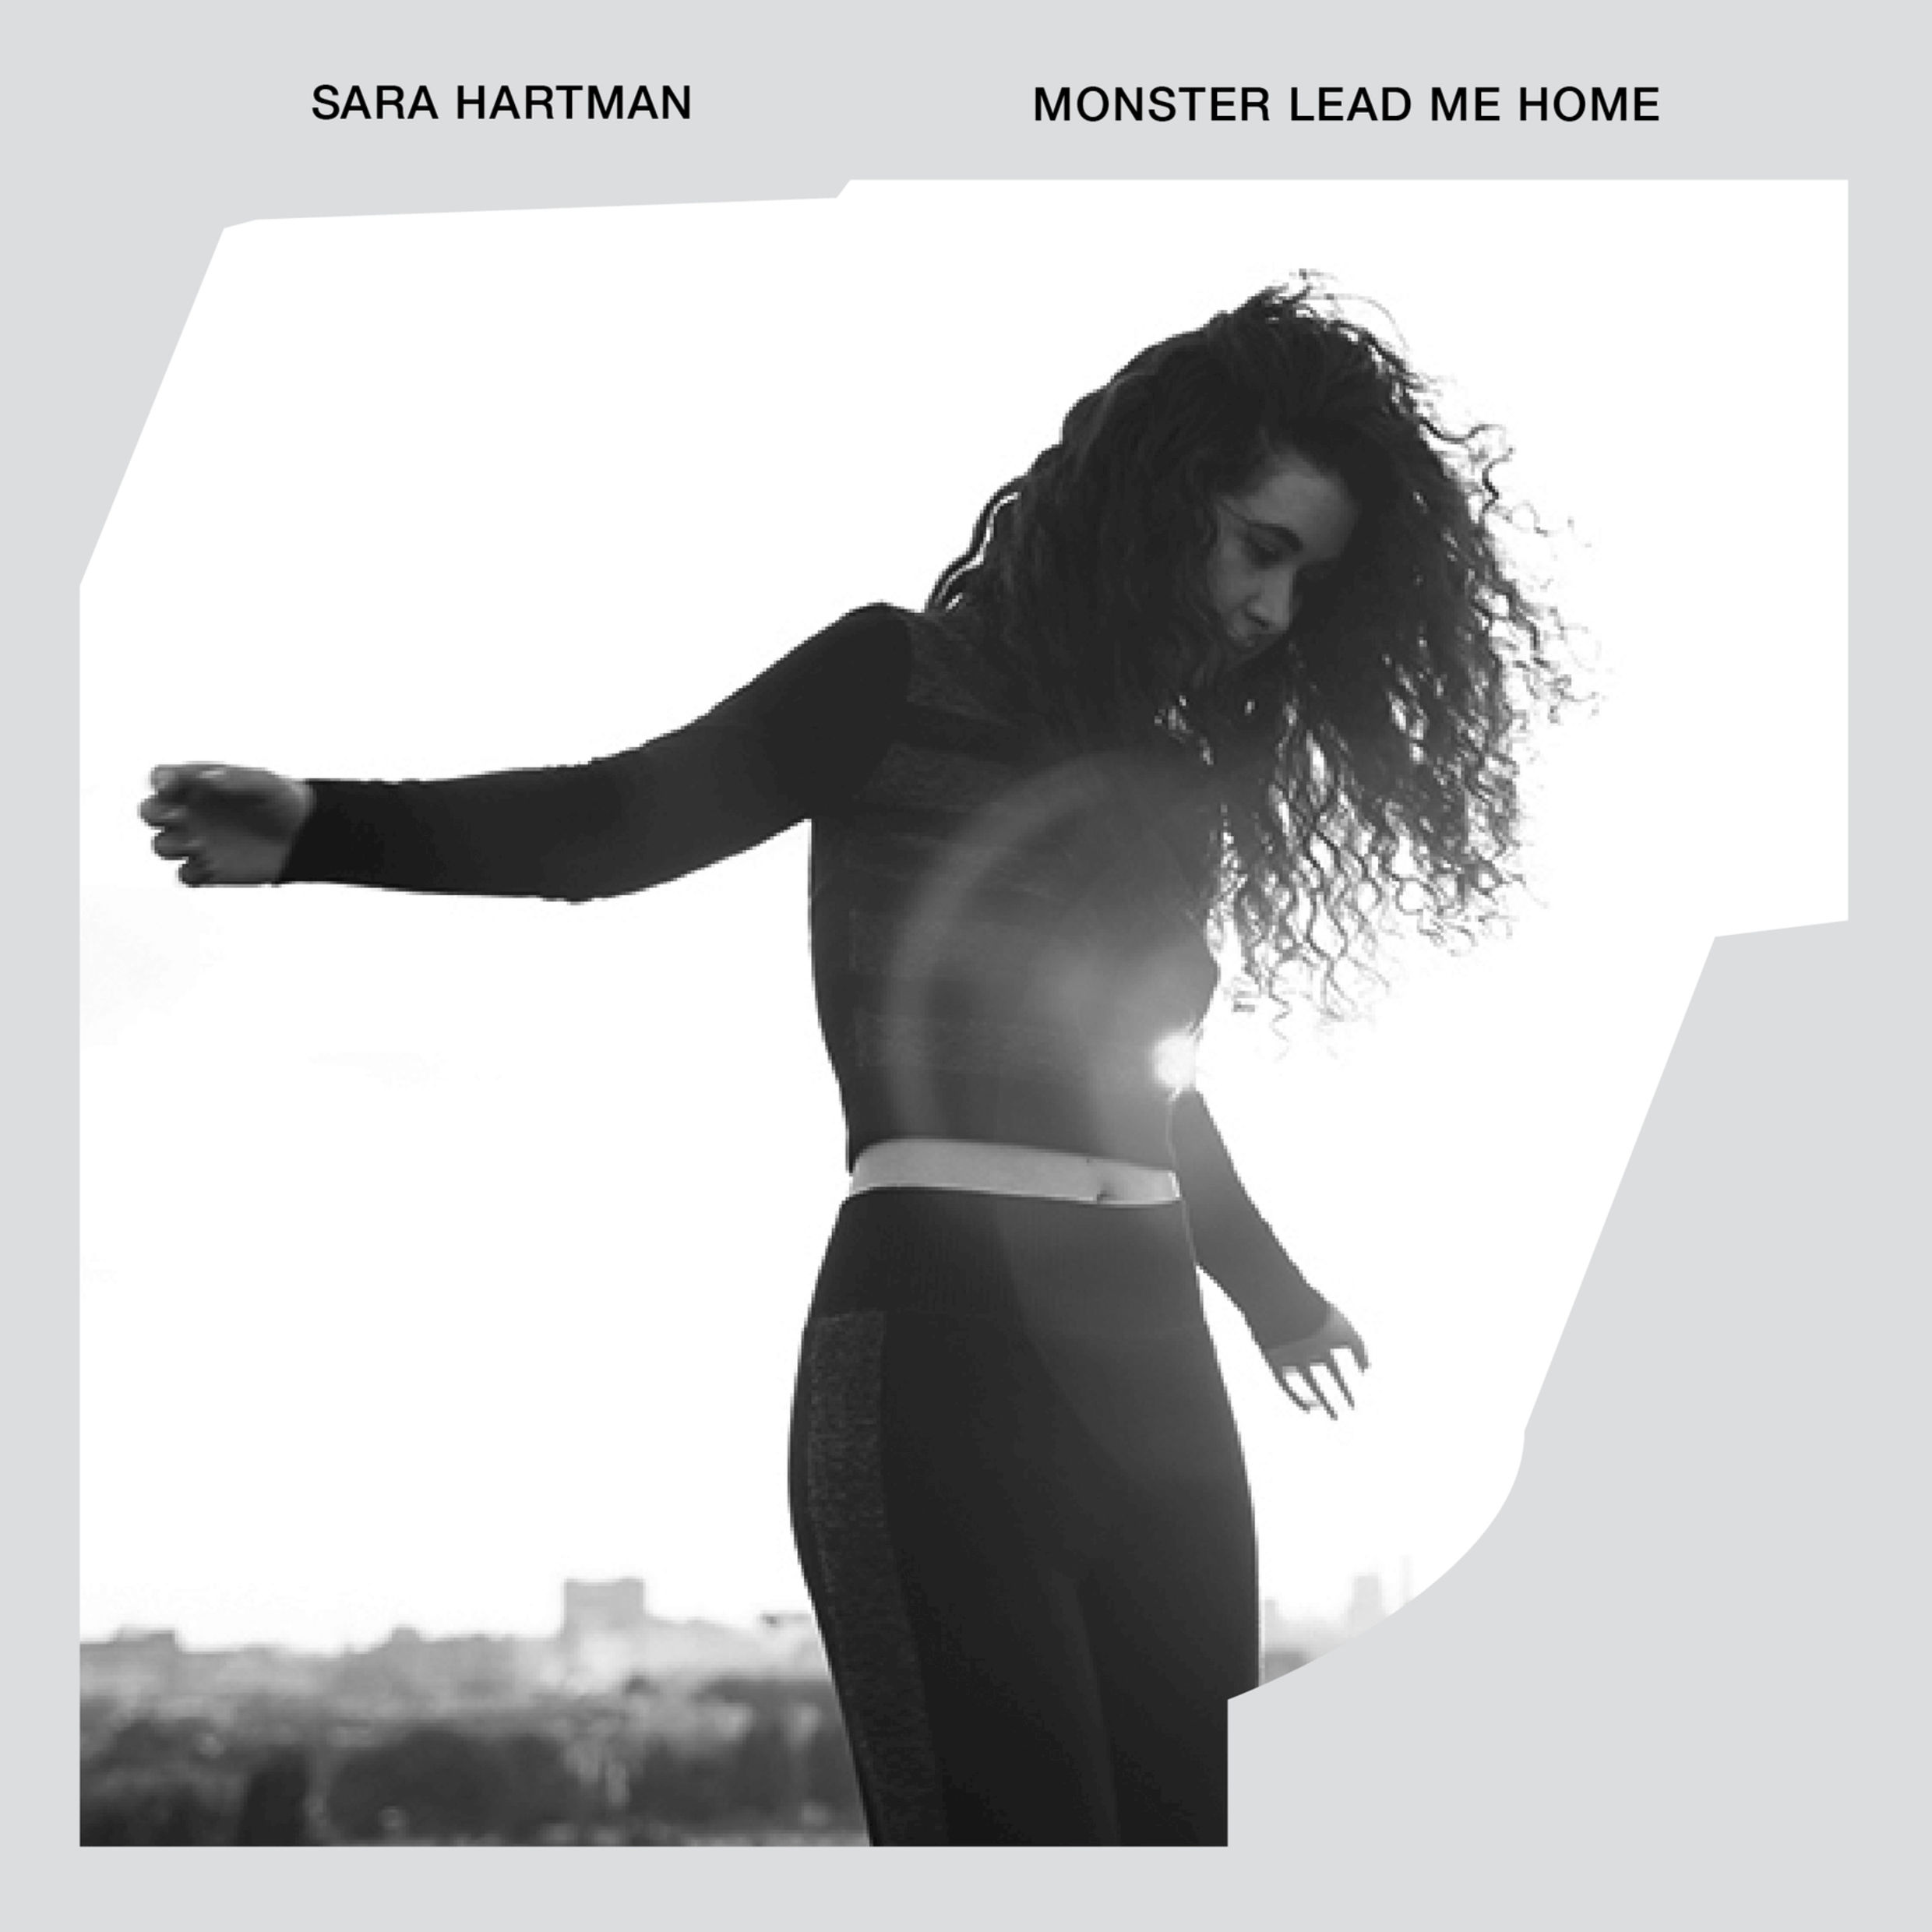 Sara-Hartman-Monster-Lead-Me-Home-2015-2480x2480.jpg